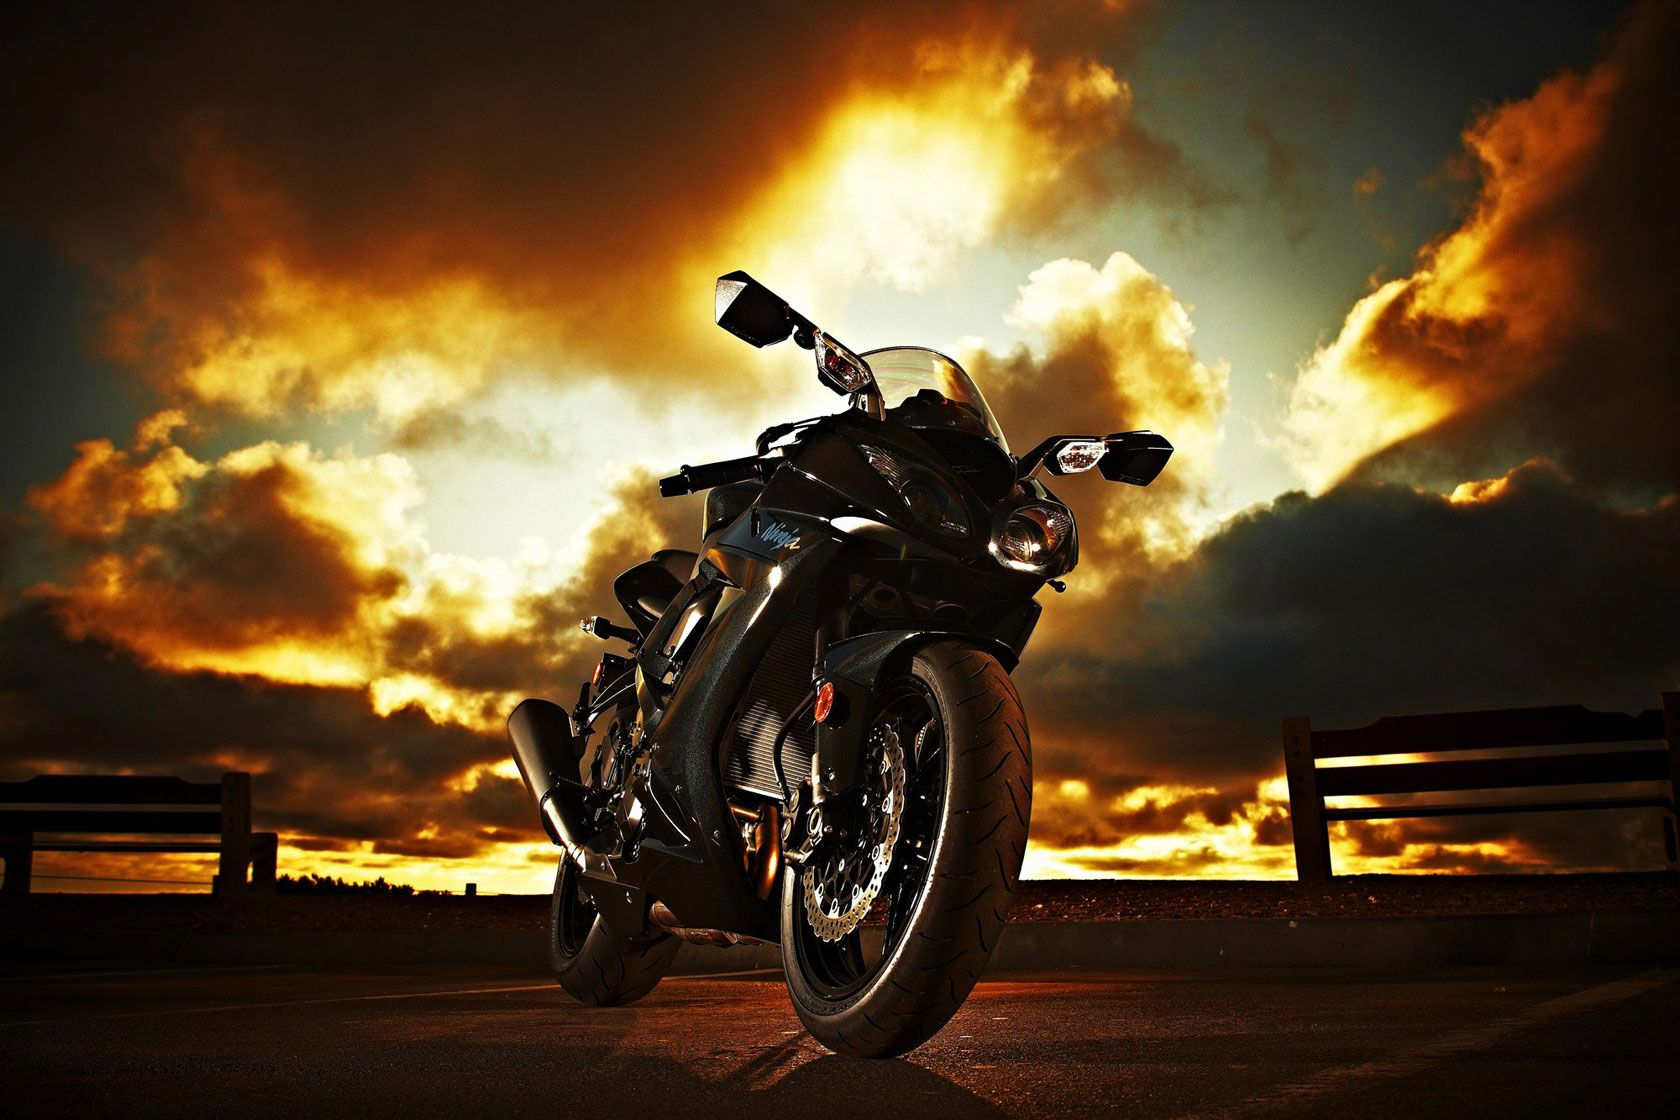 motorcycle wallpaper collection for free download | hd wallpapers